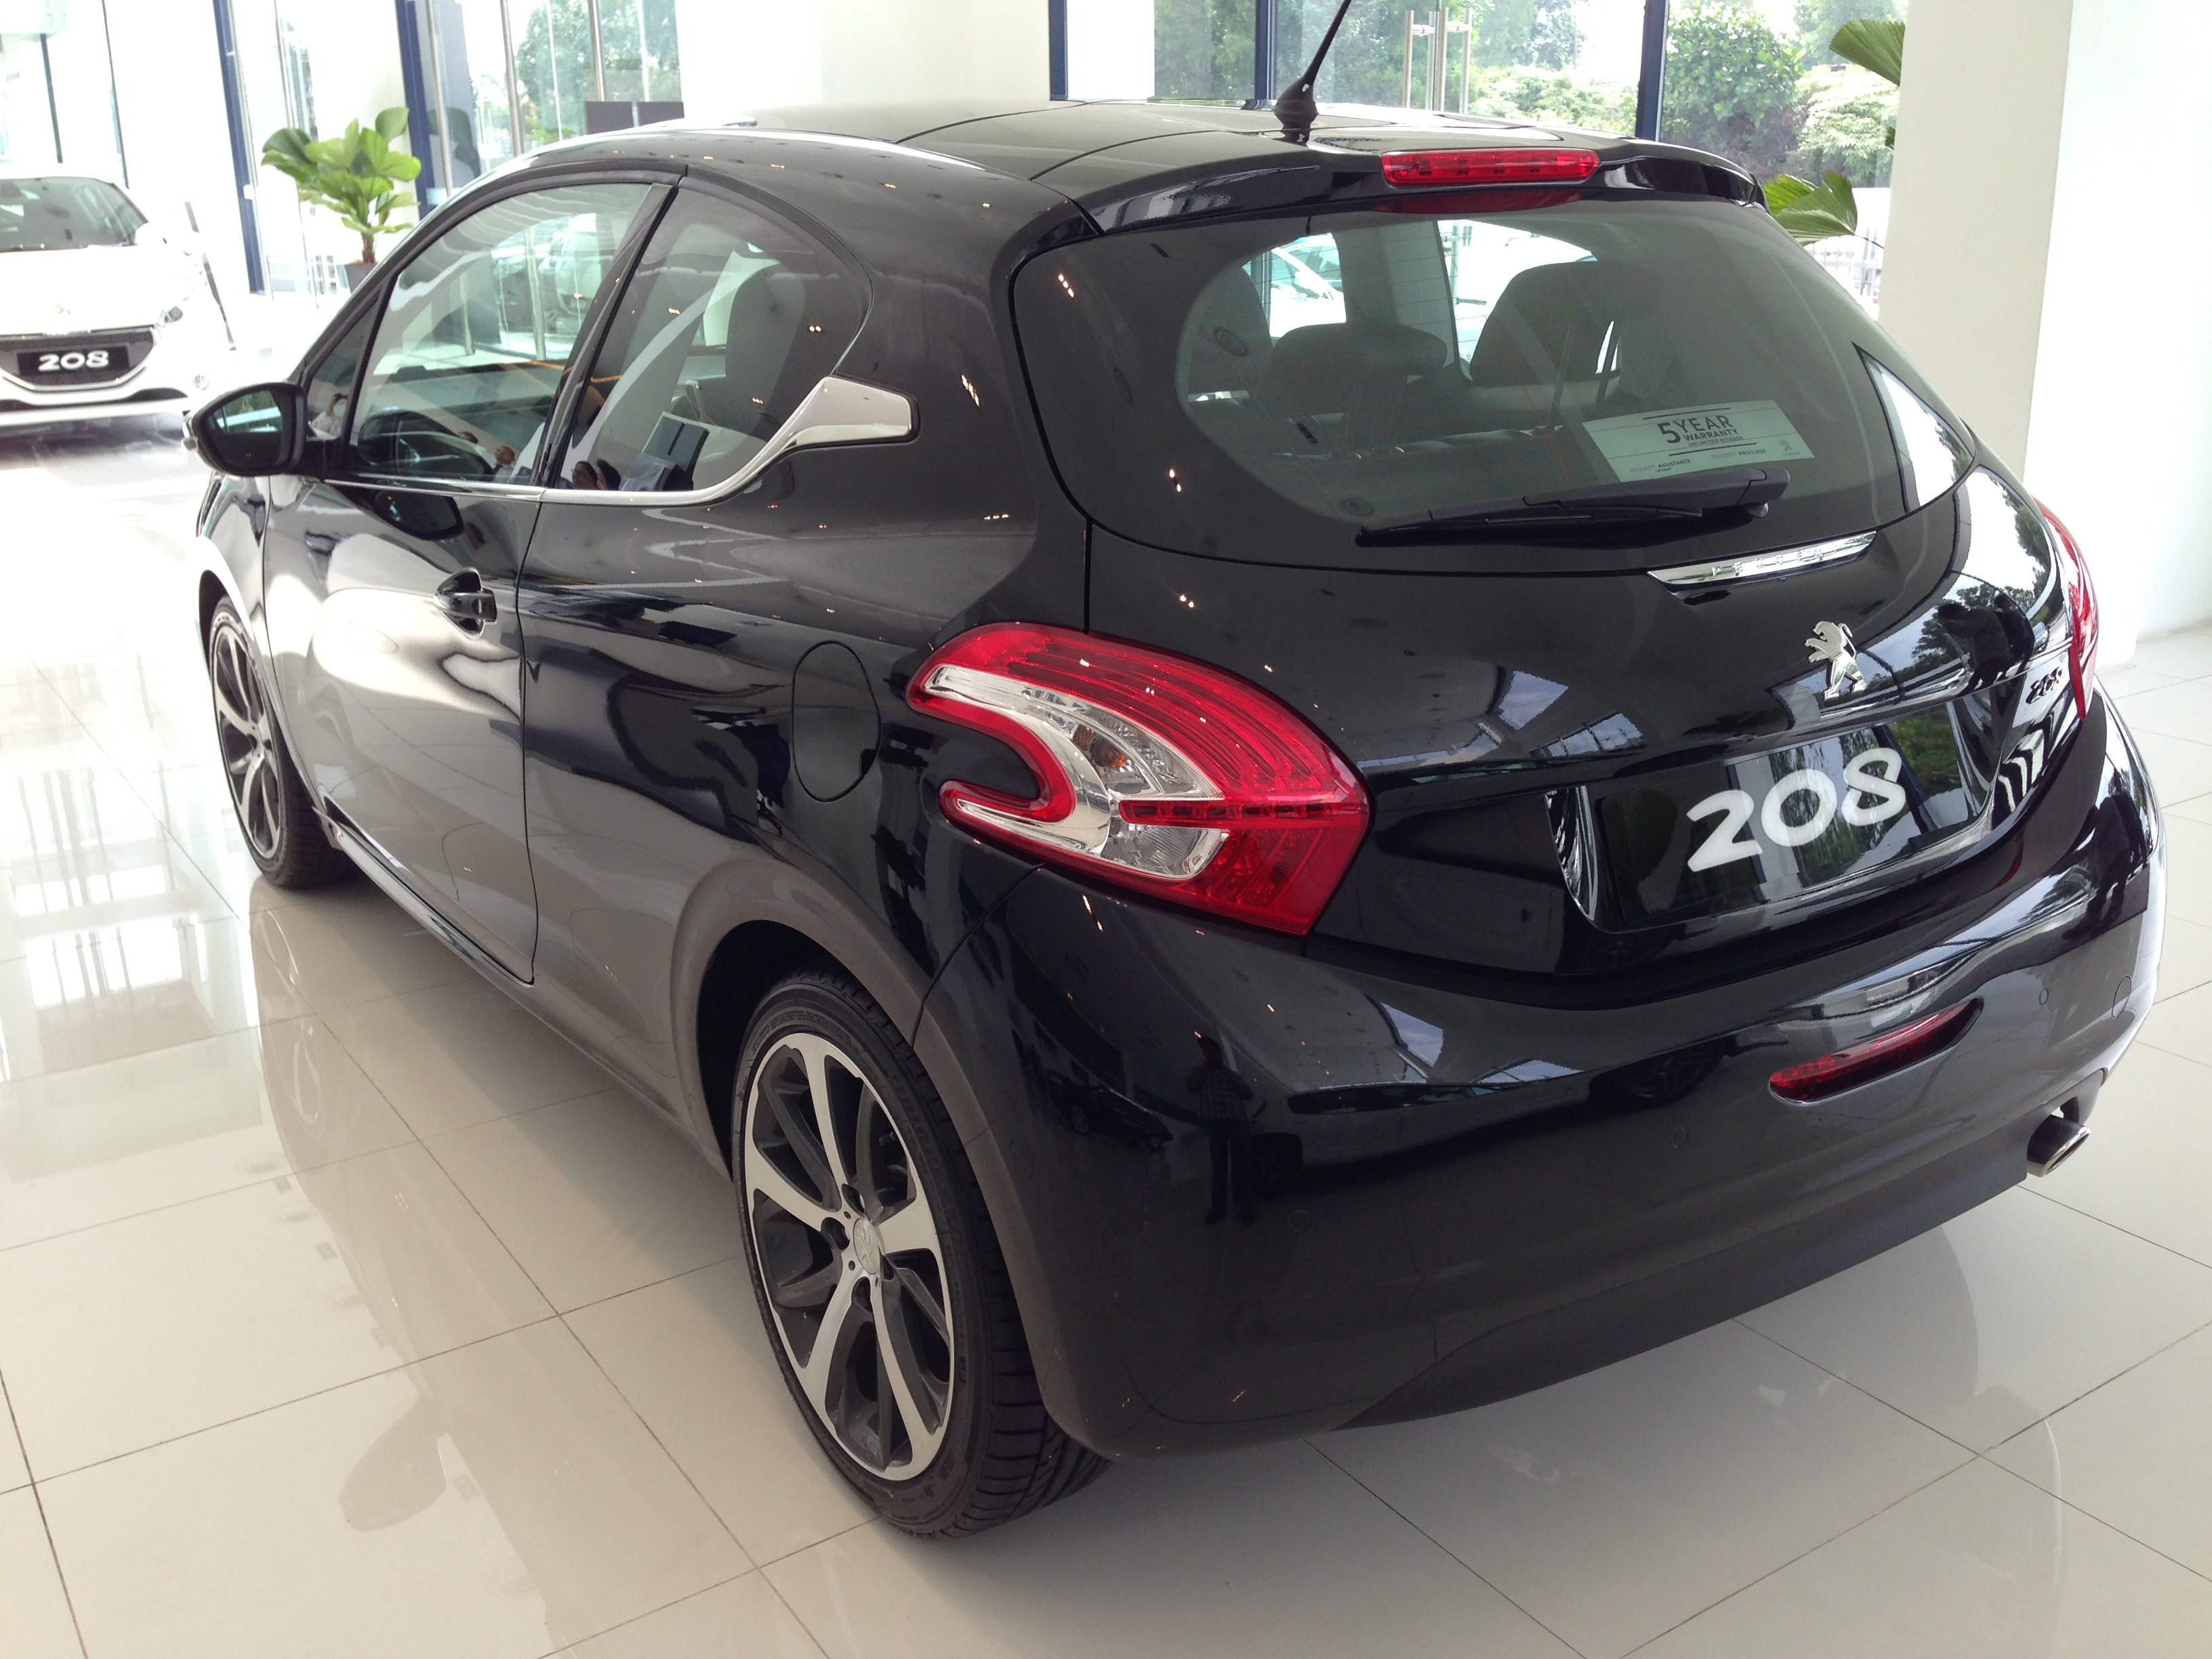 peugeot 208 on display specs unveiled via brochures paul tan image 167837. Black Bedroom Furniture Sets. Home Design Ideas